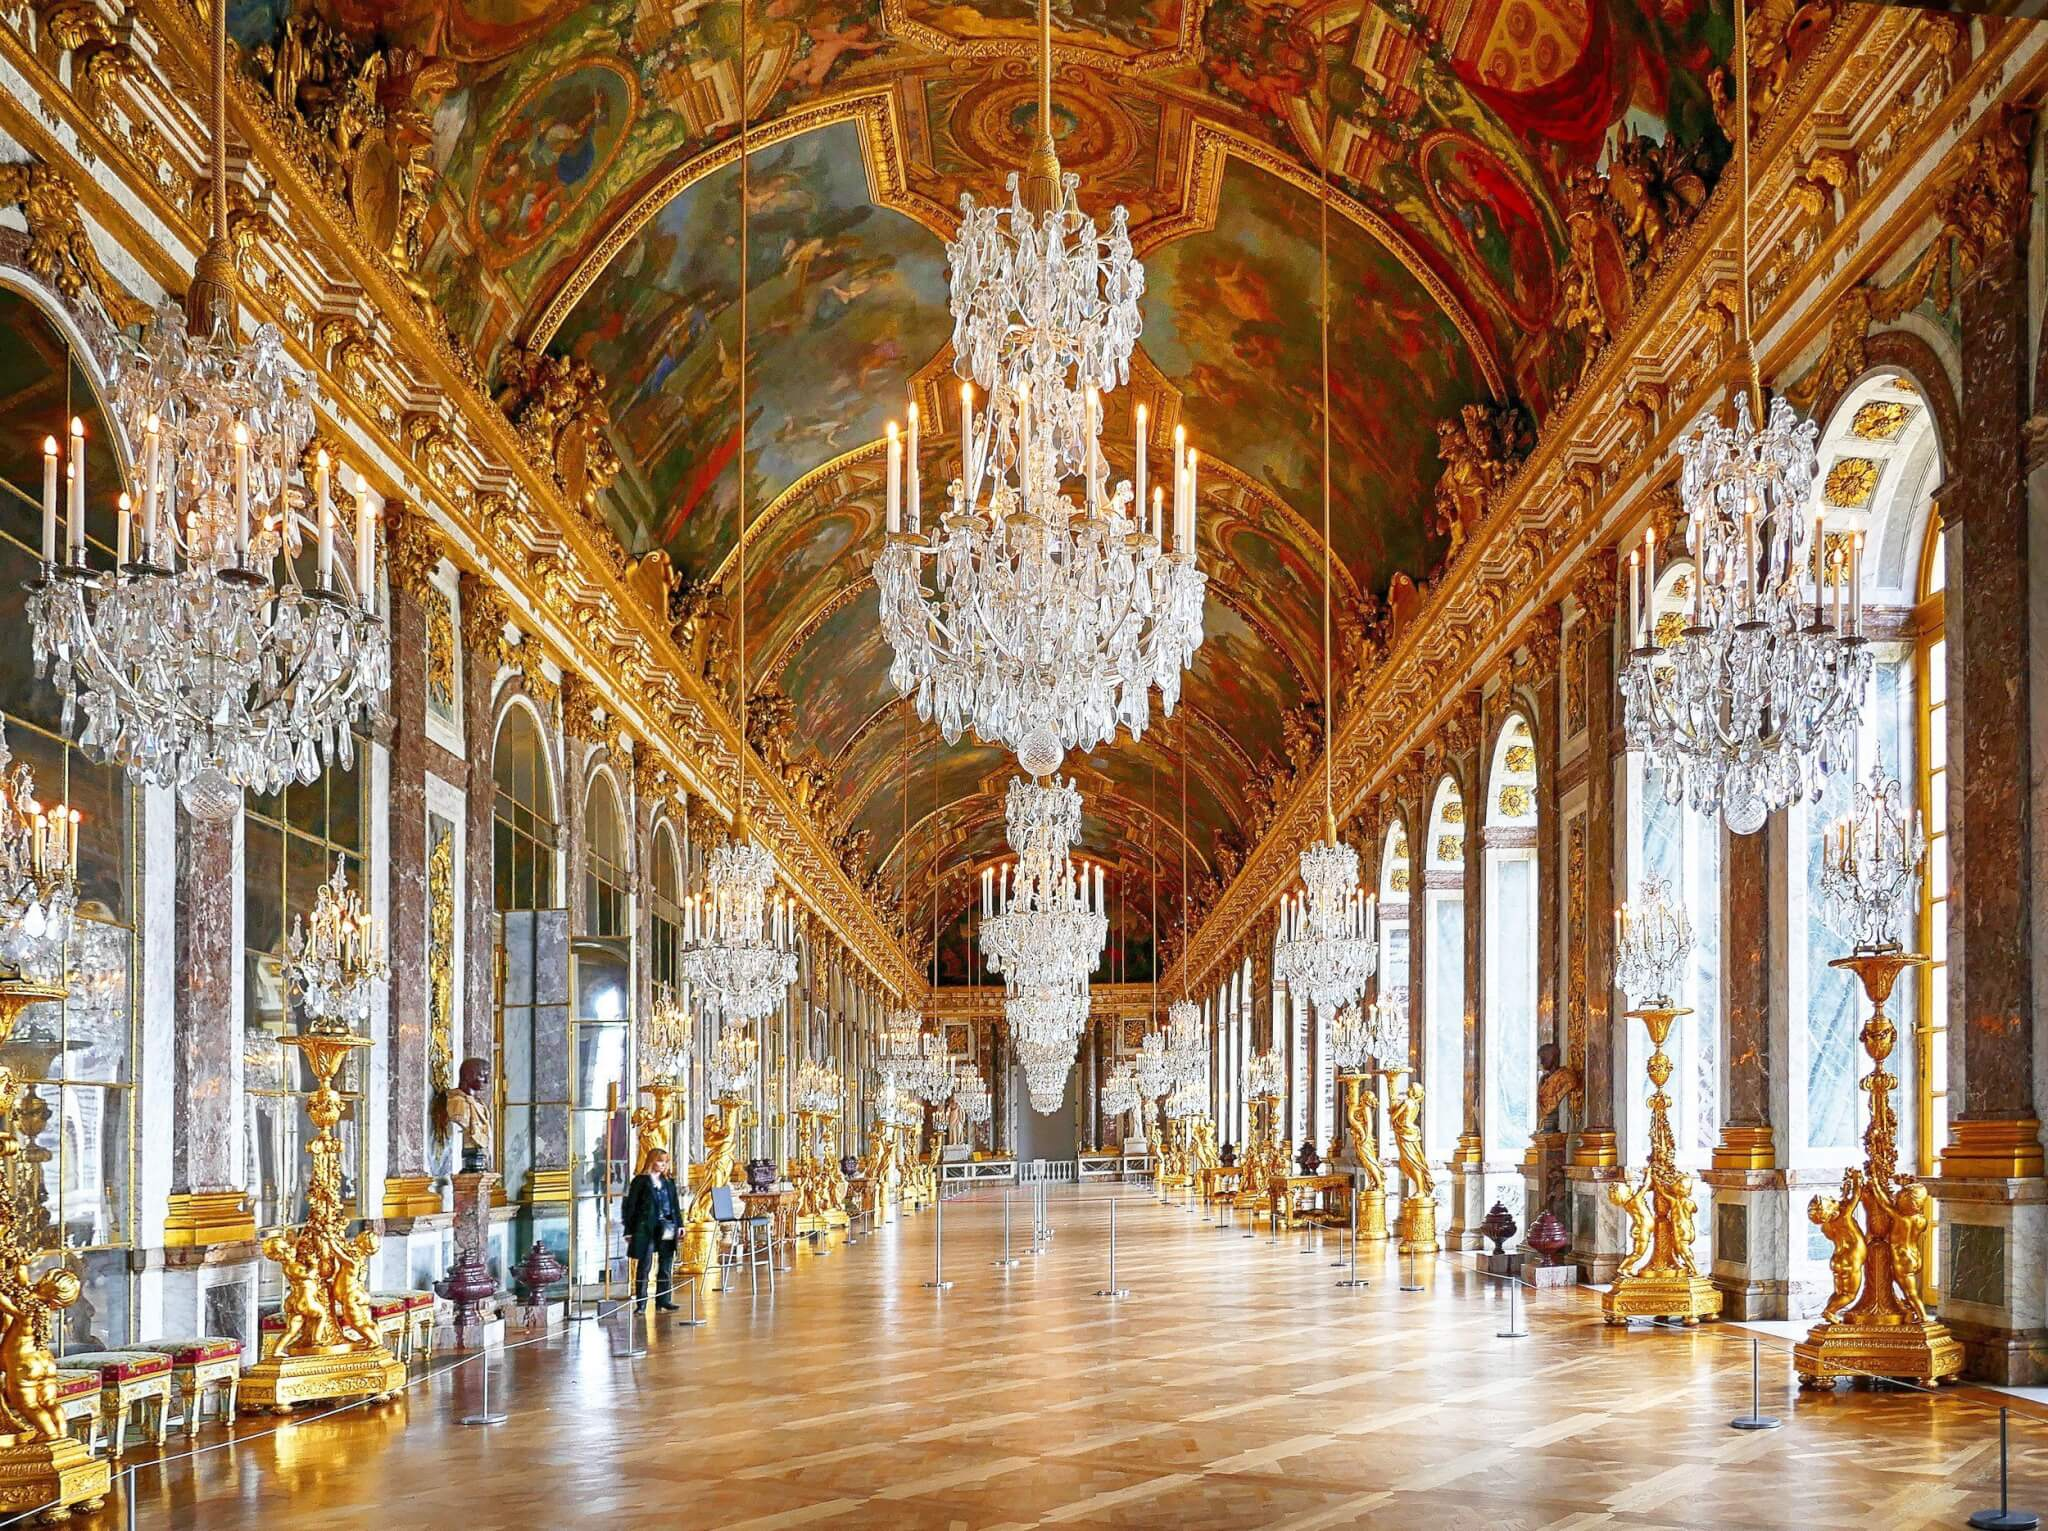 Hall of mirrors in the Palace of Versaille at closing Architettura, lusso e sangue blu